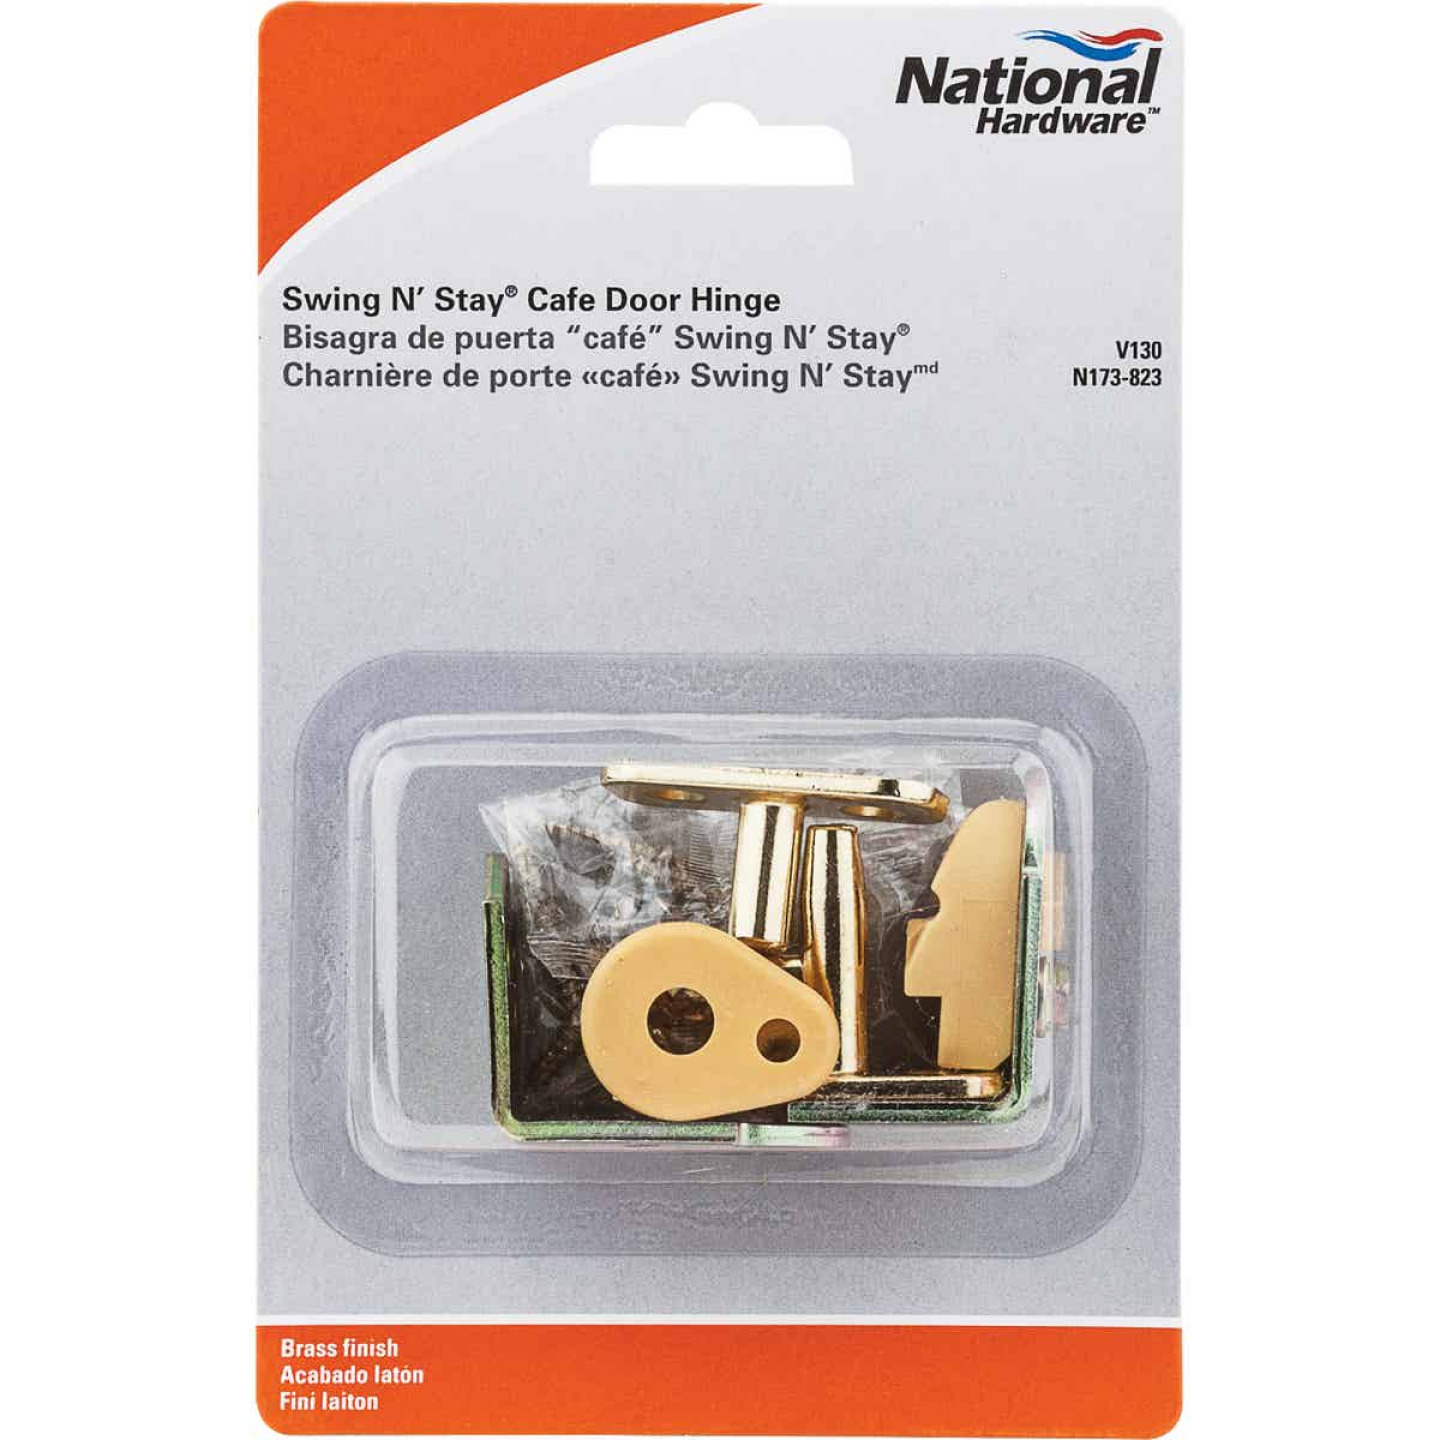 National 3/4 In. to 1-3/8 In. Satin Brass Swing & Stay Door Hinge Image 2